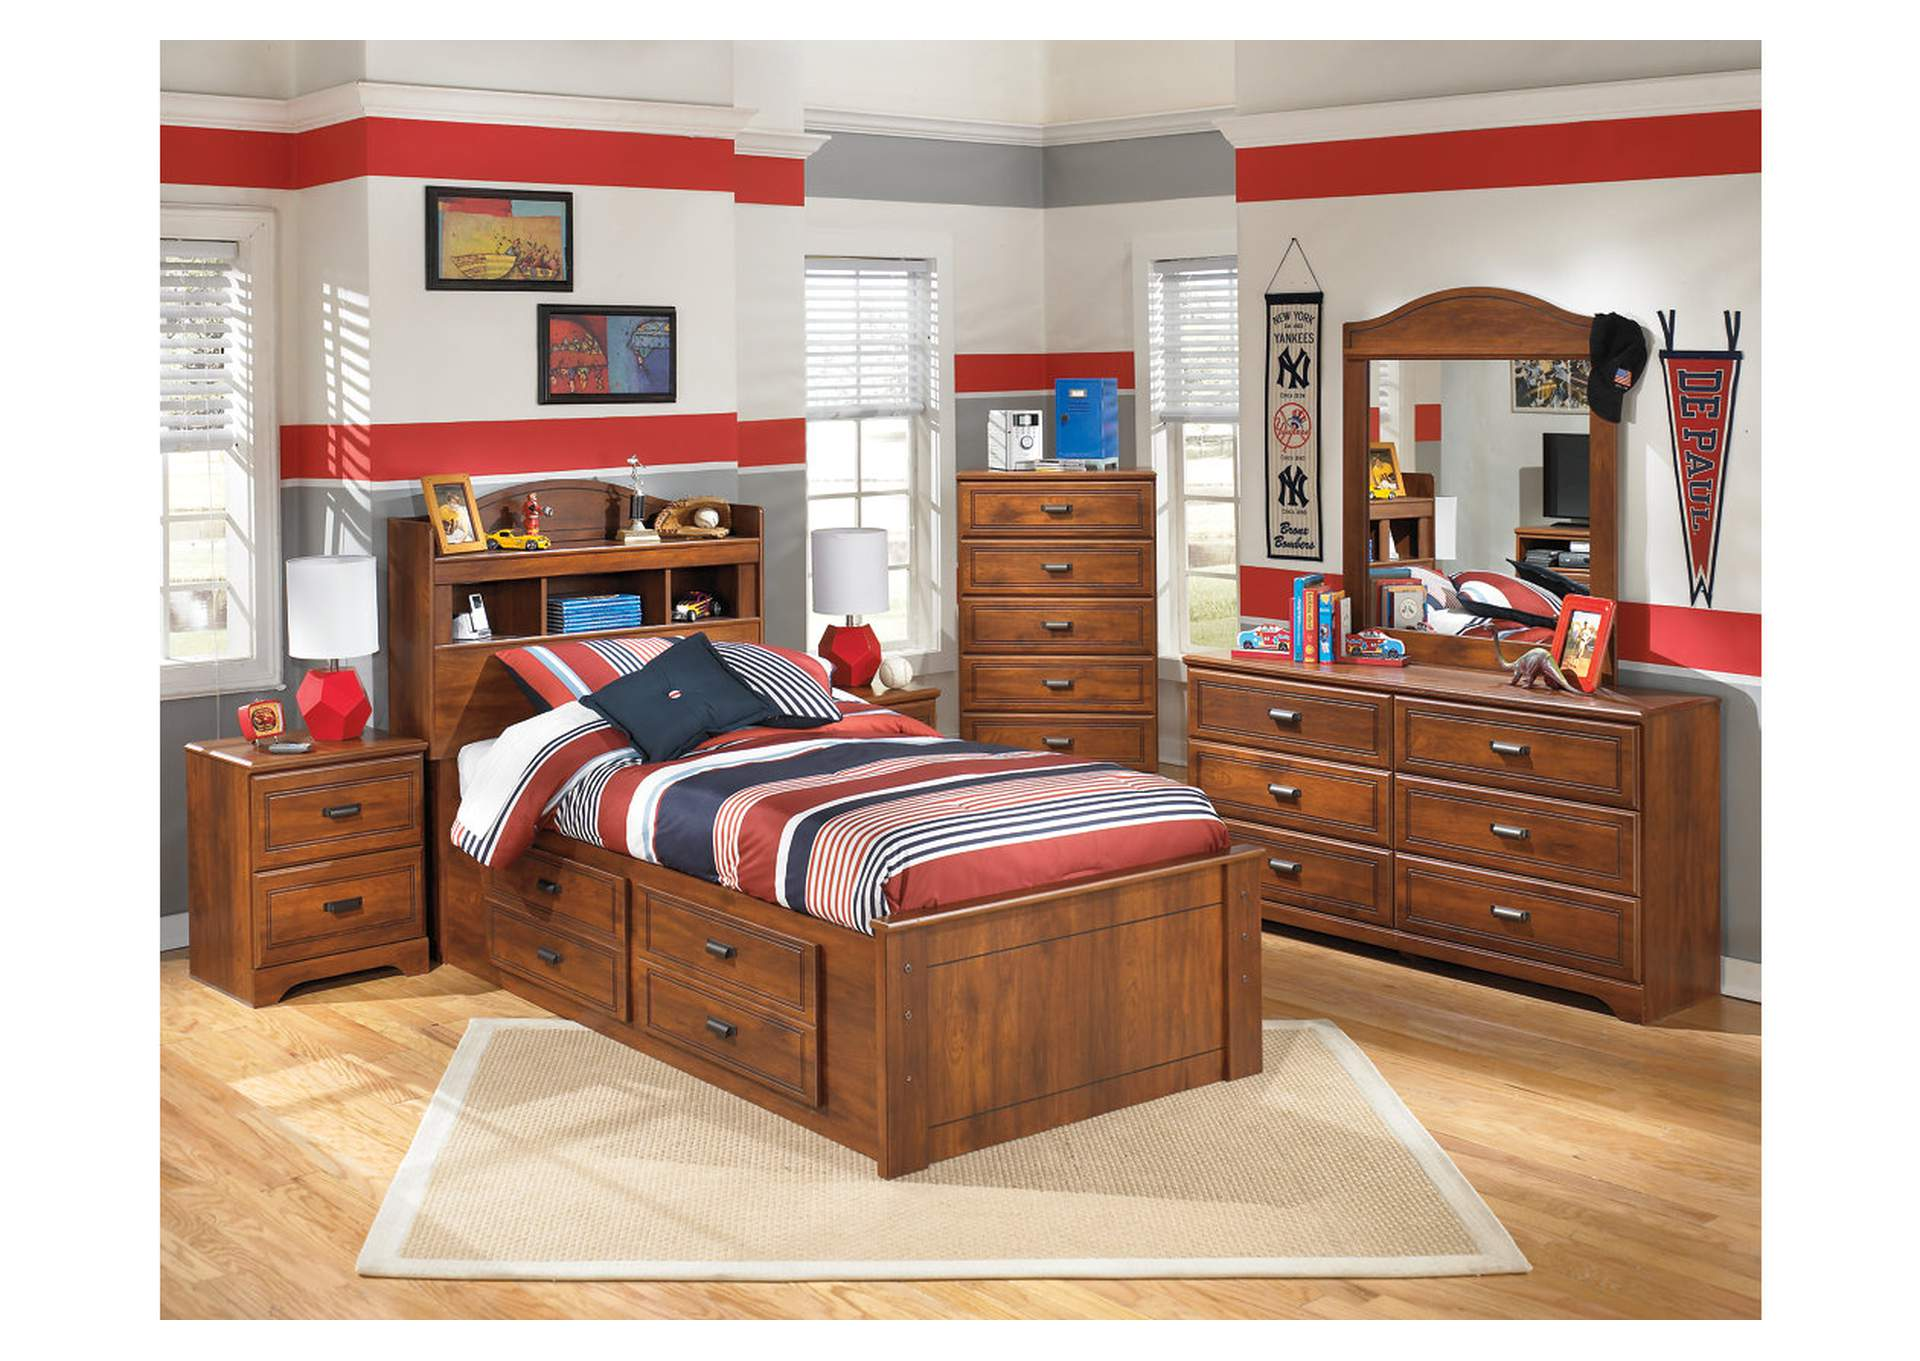 Barchan Twin Bookcase Storage Bed w/Dresser, Mirror & Drawer Chest,Signature Design by Ashley